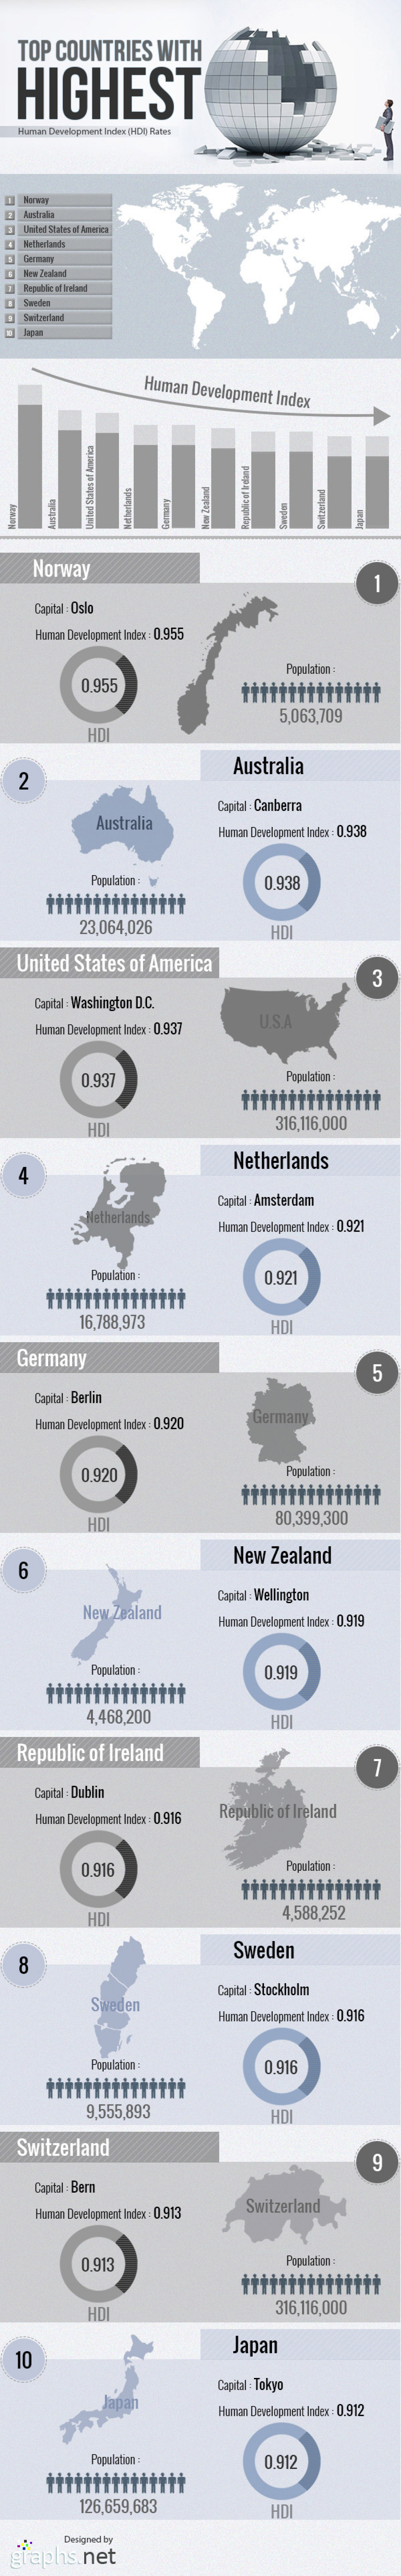 Top countries with highest human development index rates Infographic